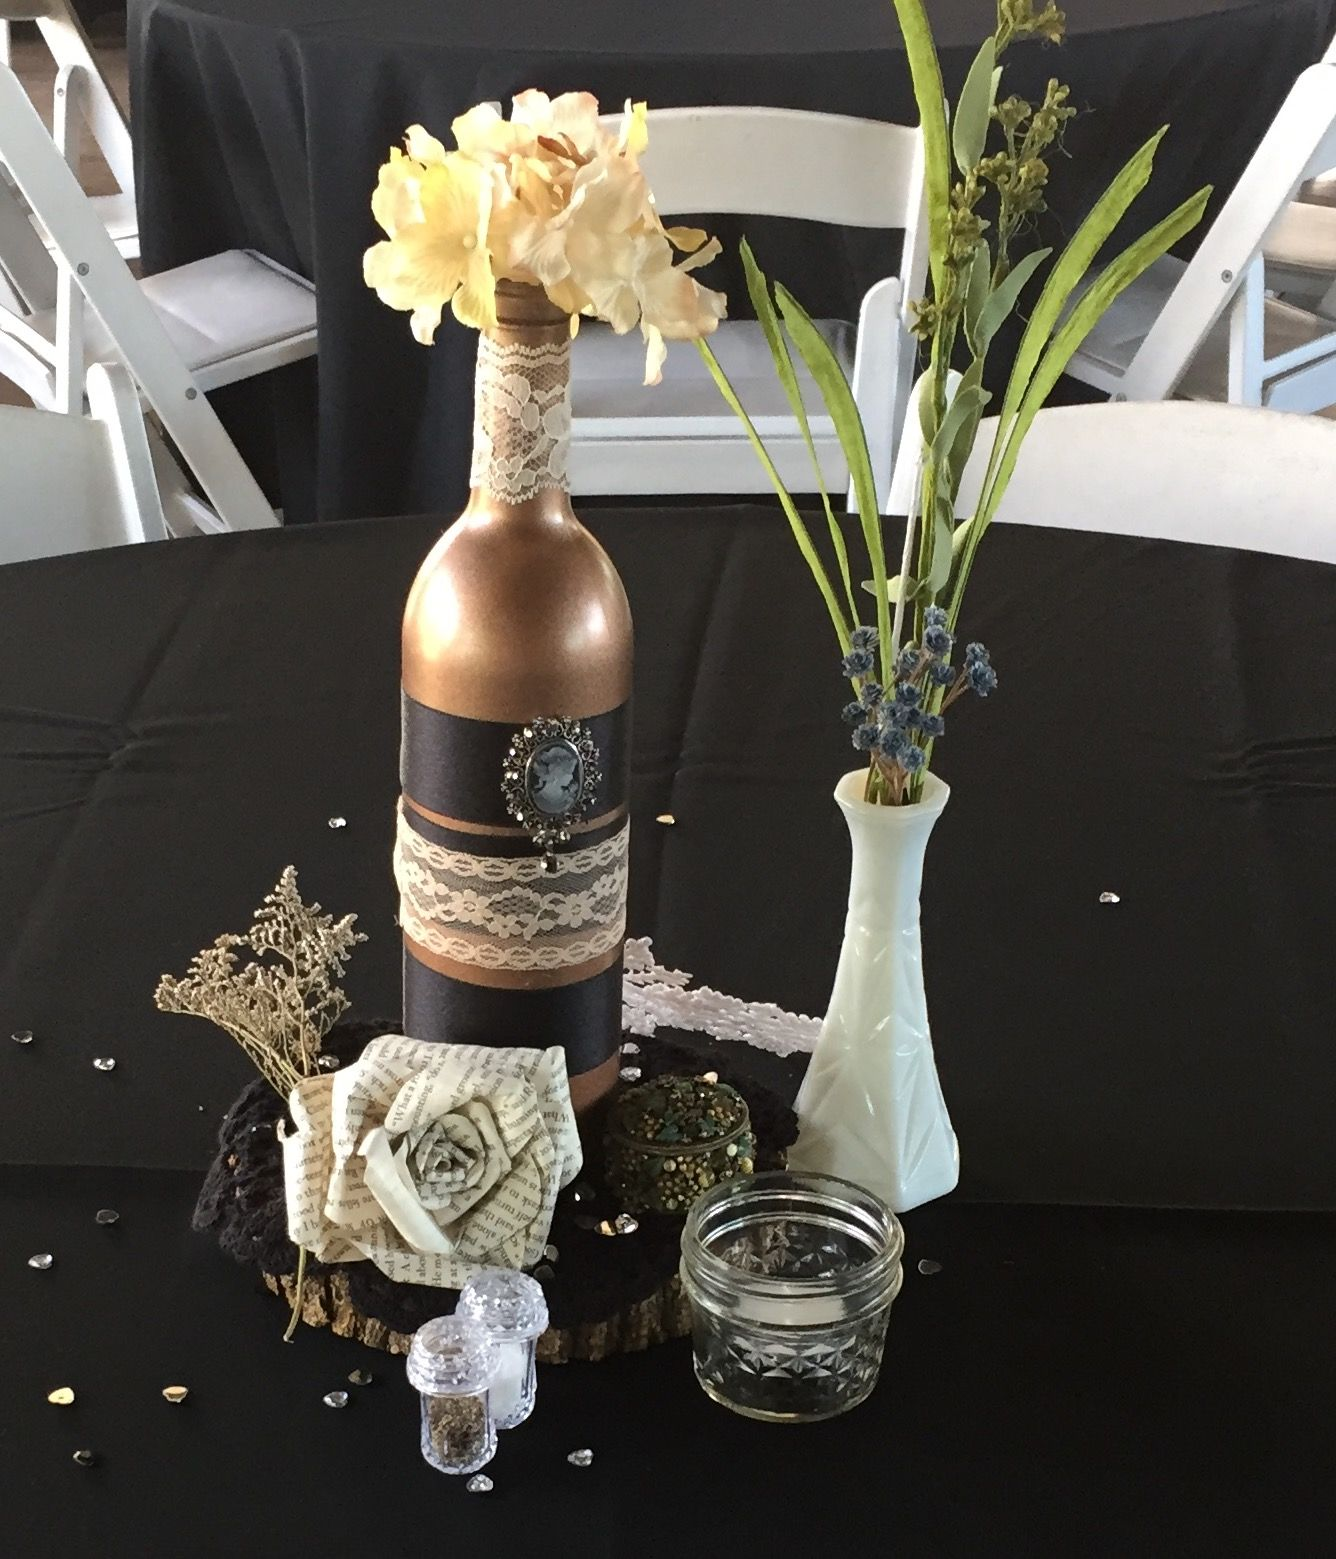 Vintage eclectic centerpiece 5 made with a copper colored vintage eclectic centerpiece made with a copper colored decorated wine bottle a vintage milk glass vase newspaper flower a wood slice reviewsmspy